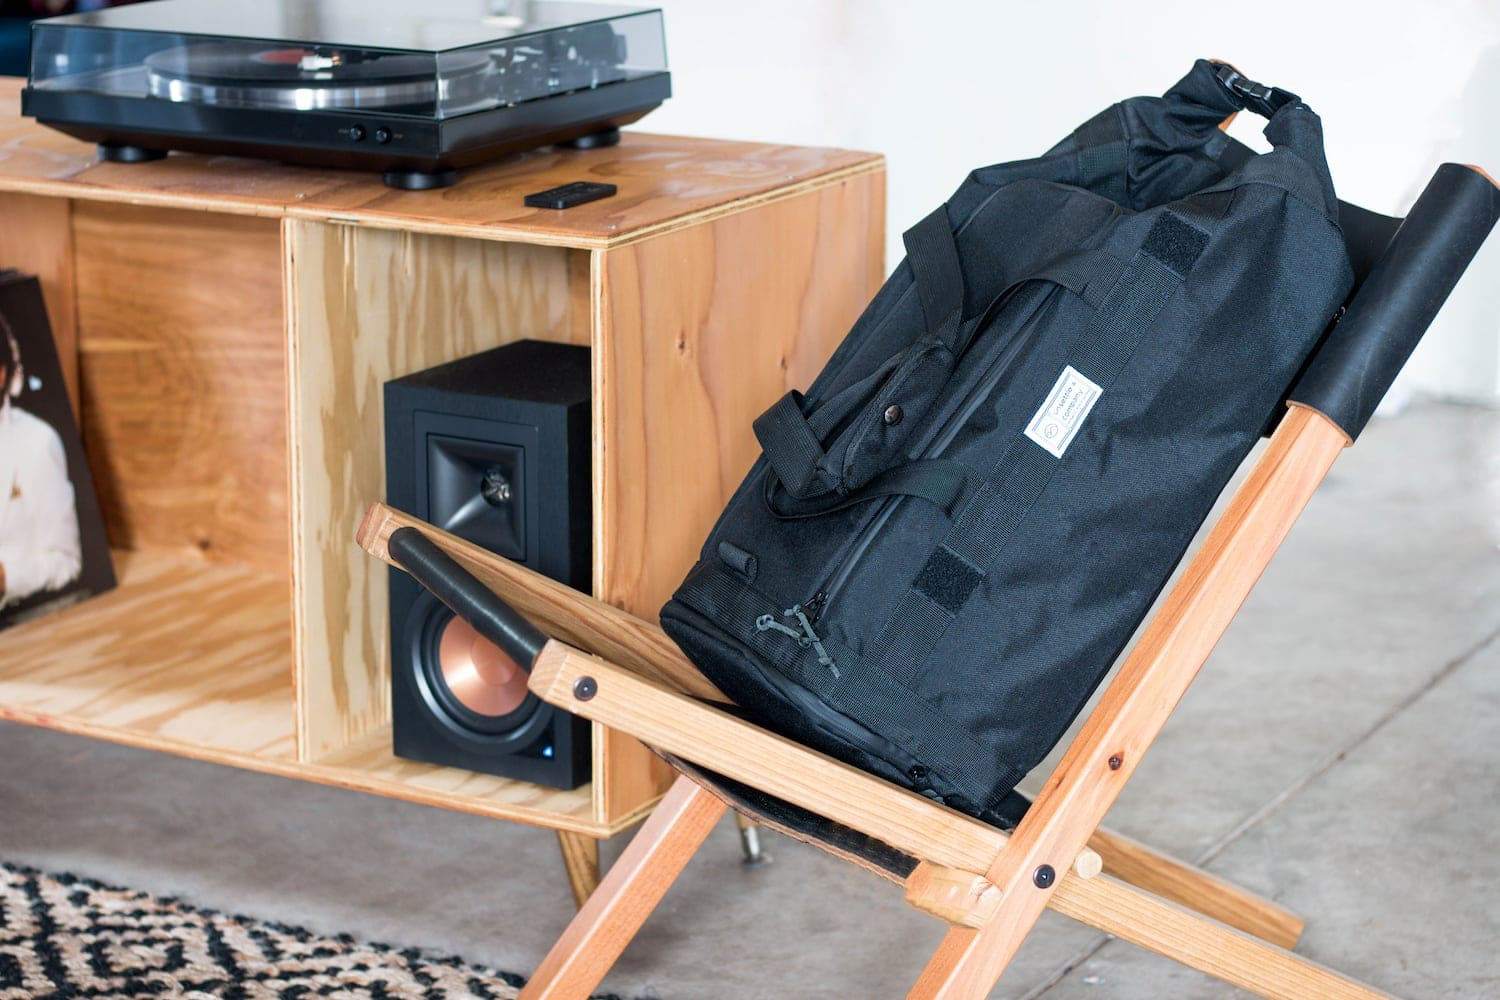 commuter duffle Pack collector lifestyle